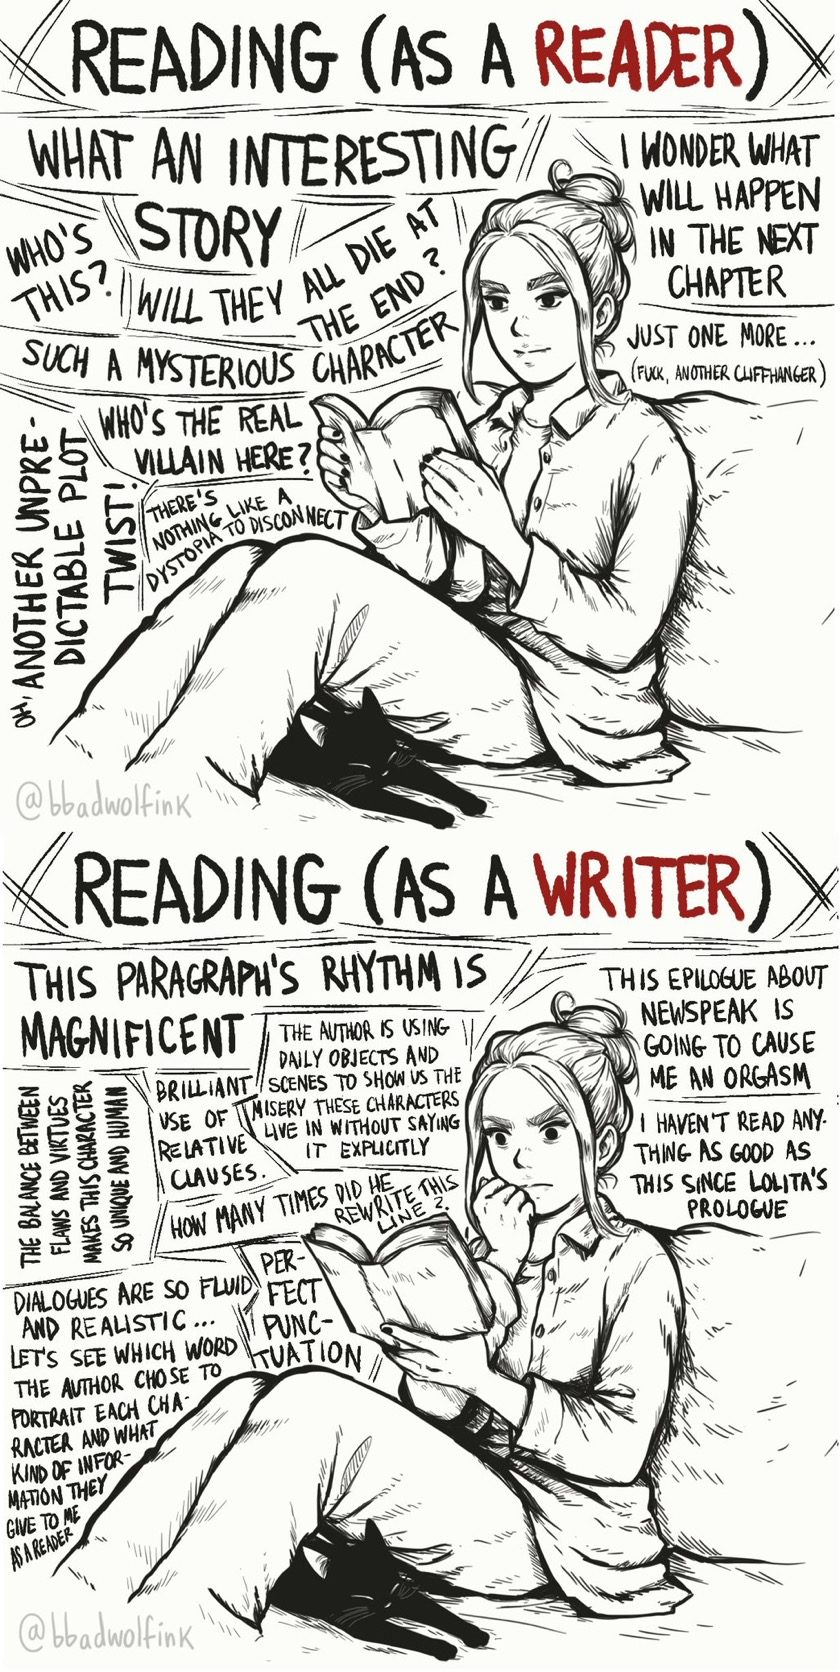 Reading as a reader vs. reading as a writer #cartoon